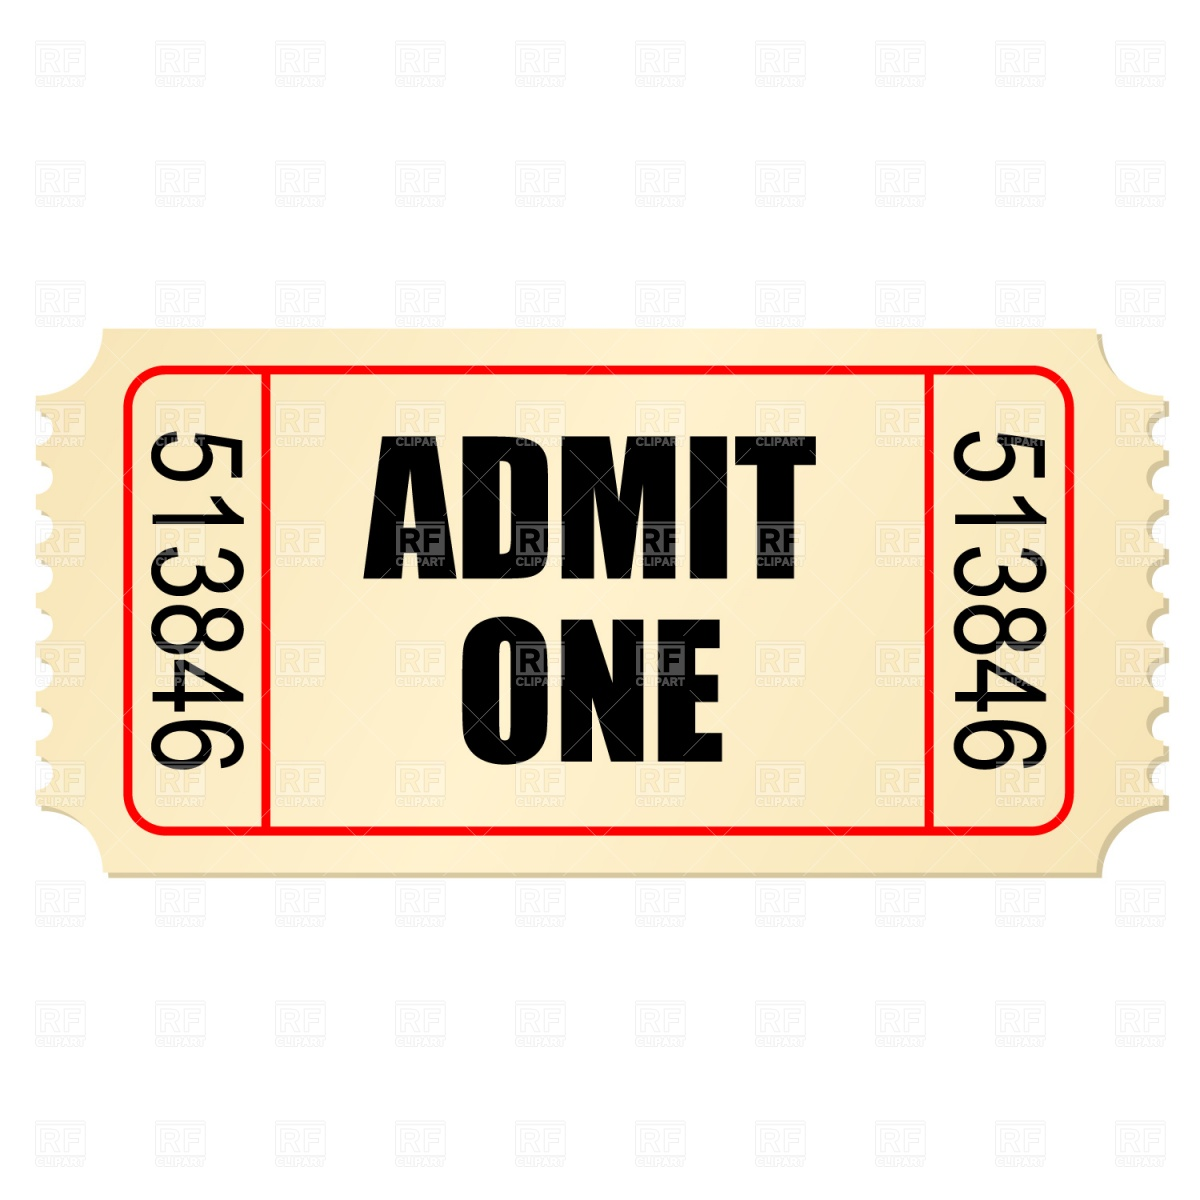 Blank ticket stub clipart banner download 17 Ticket Stub Vector Free Images - Movie Ticket Stub Clip Art, Free ... banner download